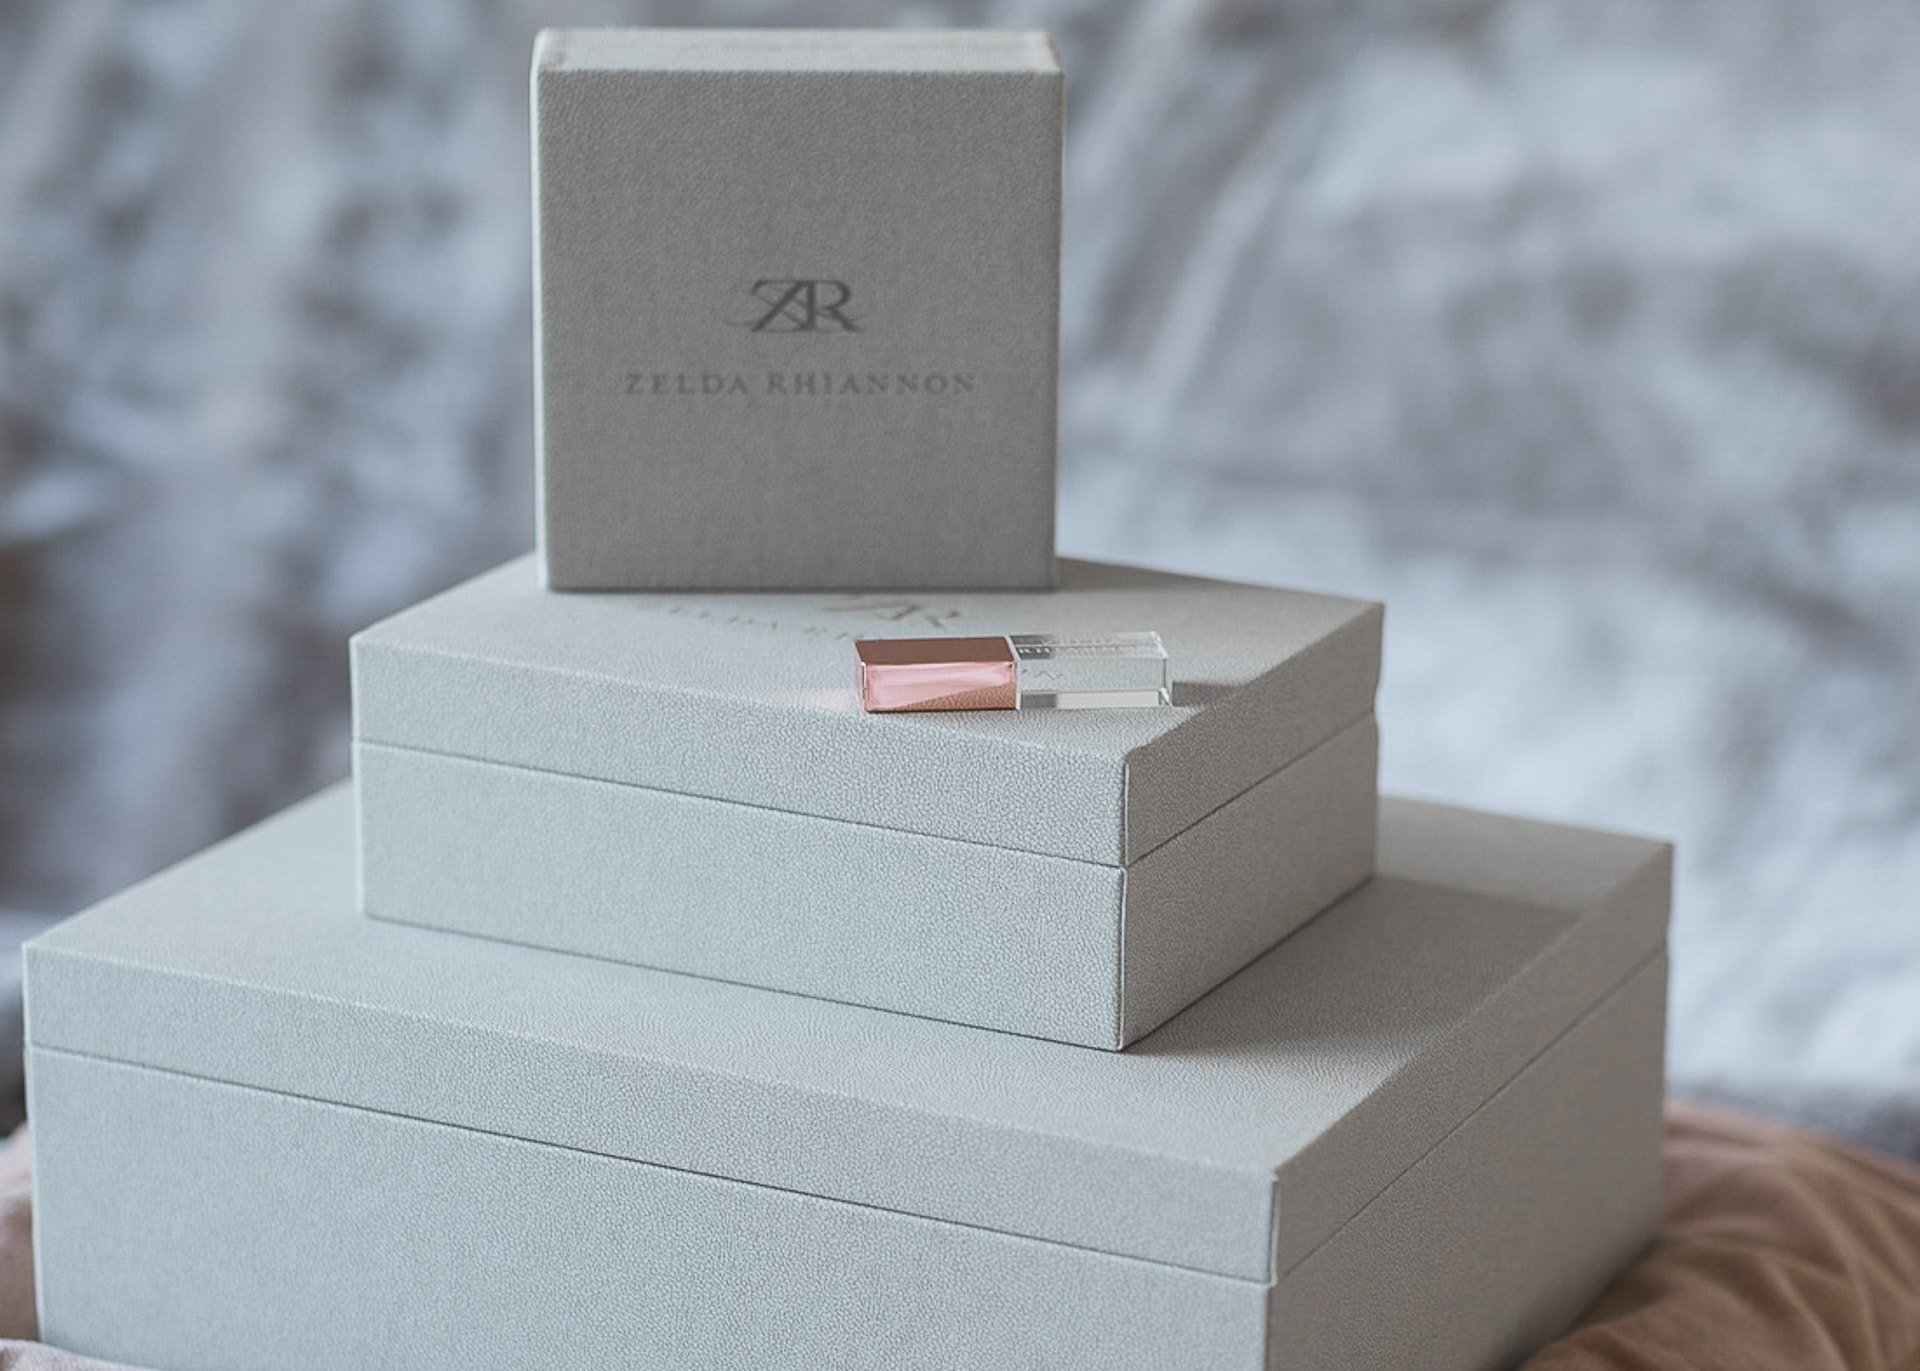 a usb with a rose gold lid on top of three grey boxes